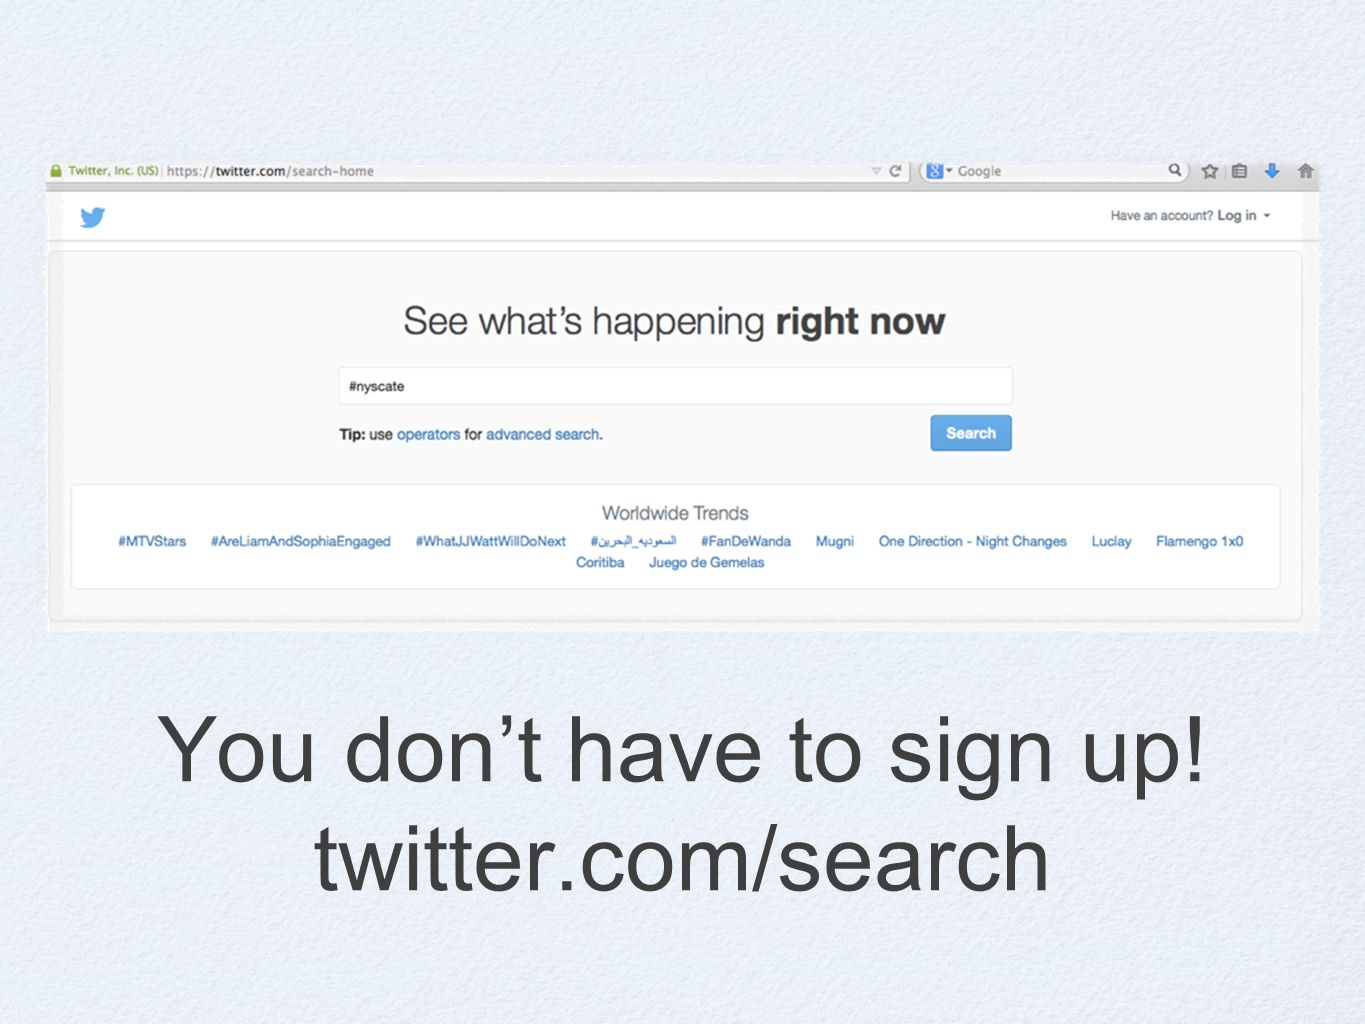 You don't have to sign up! twitter.com/search